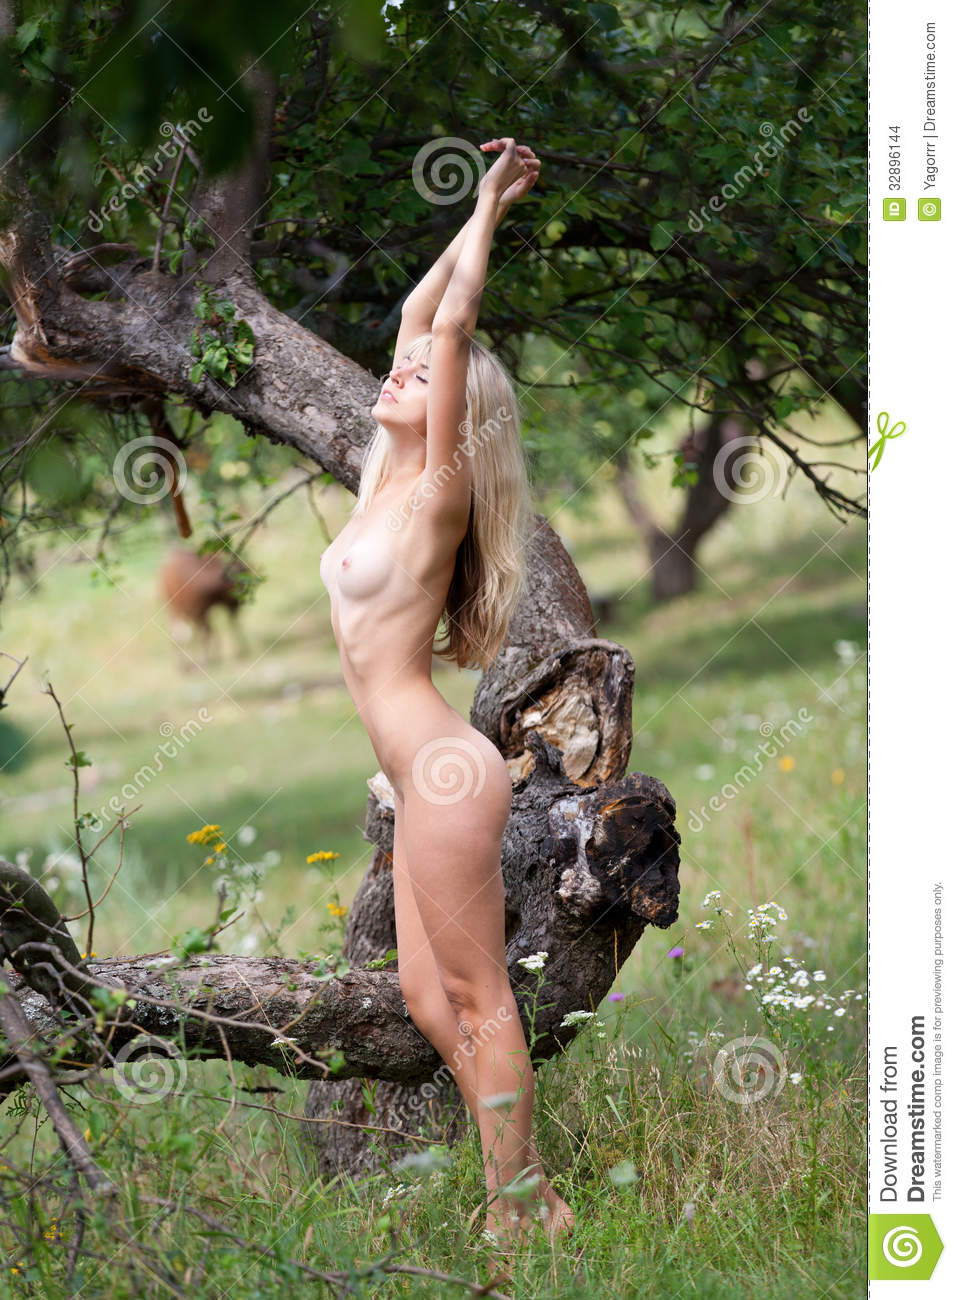 Beautiful Girl Nude In The Garden Stock Images  Image